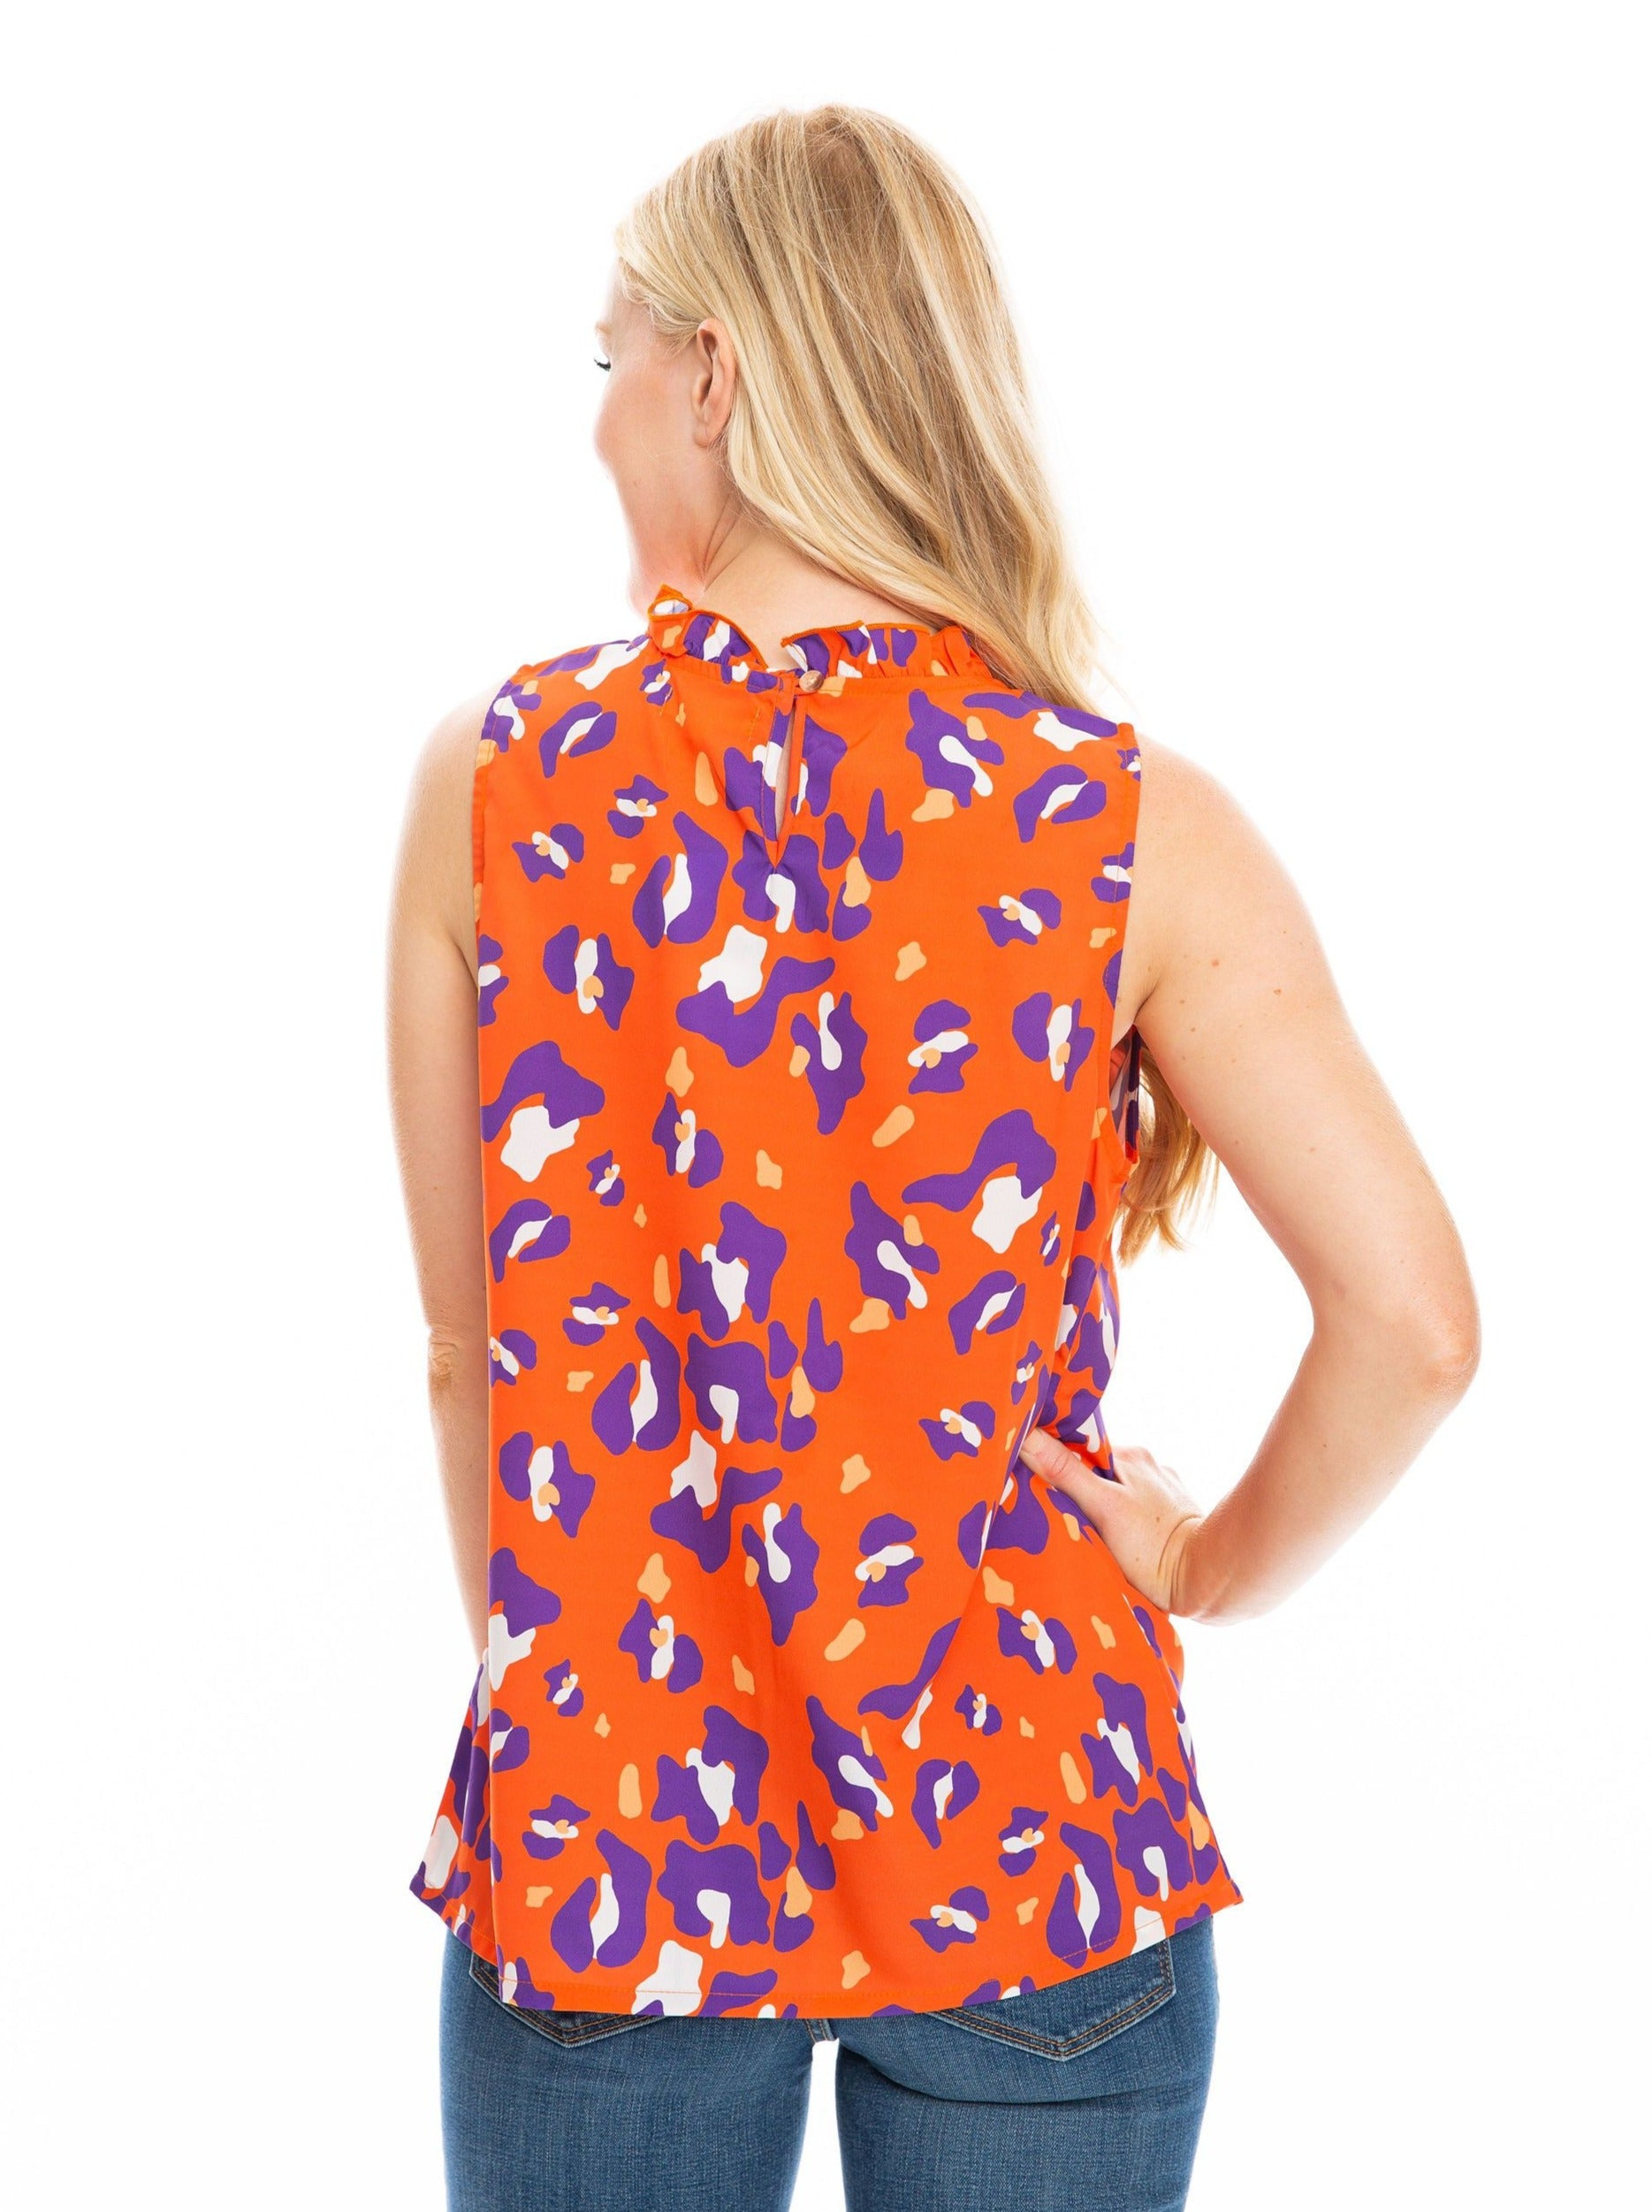 The Cheetah Ruffle Tank | Orange + Purple